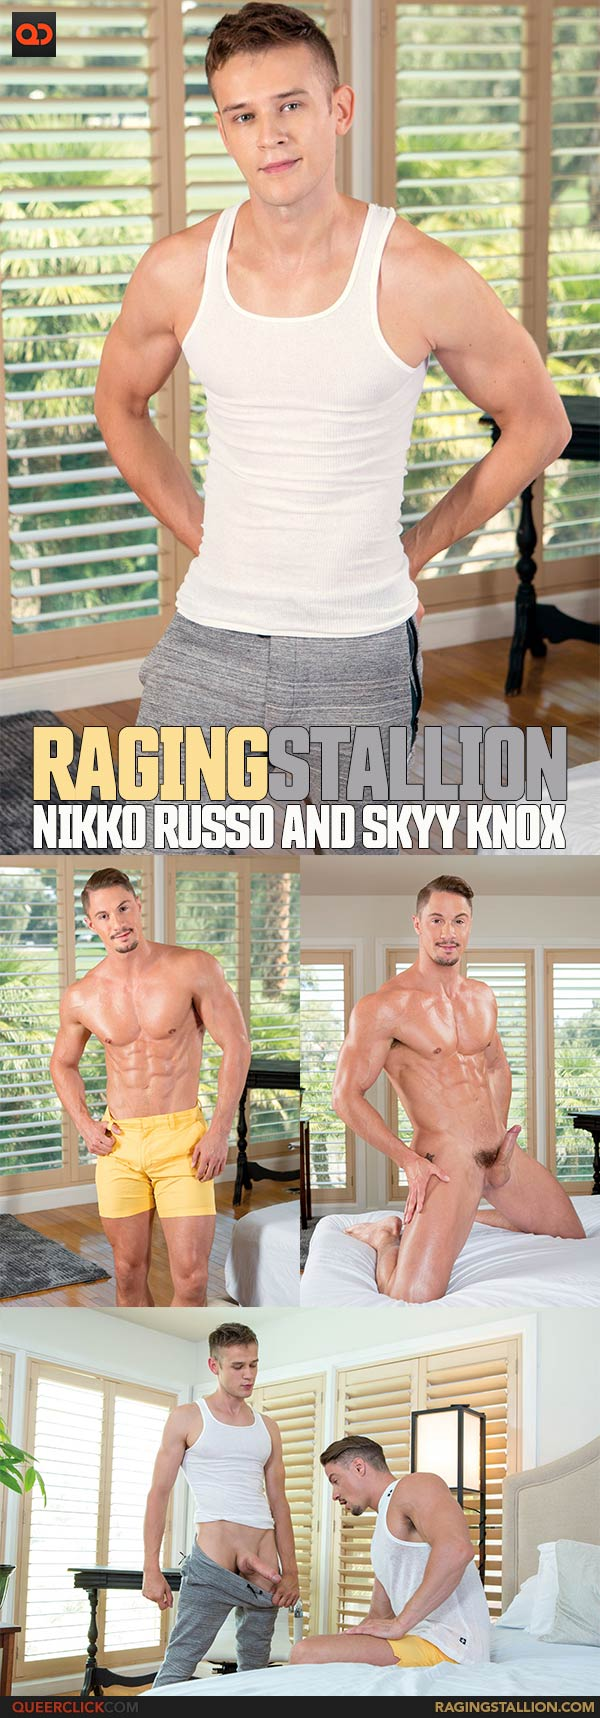 Raging Stallion: Nikko Russo and Skyy Knox